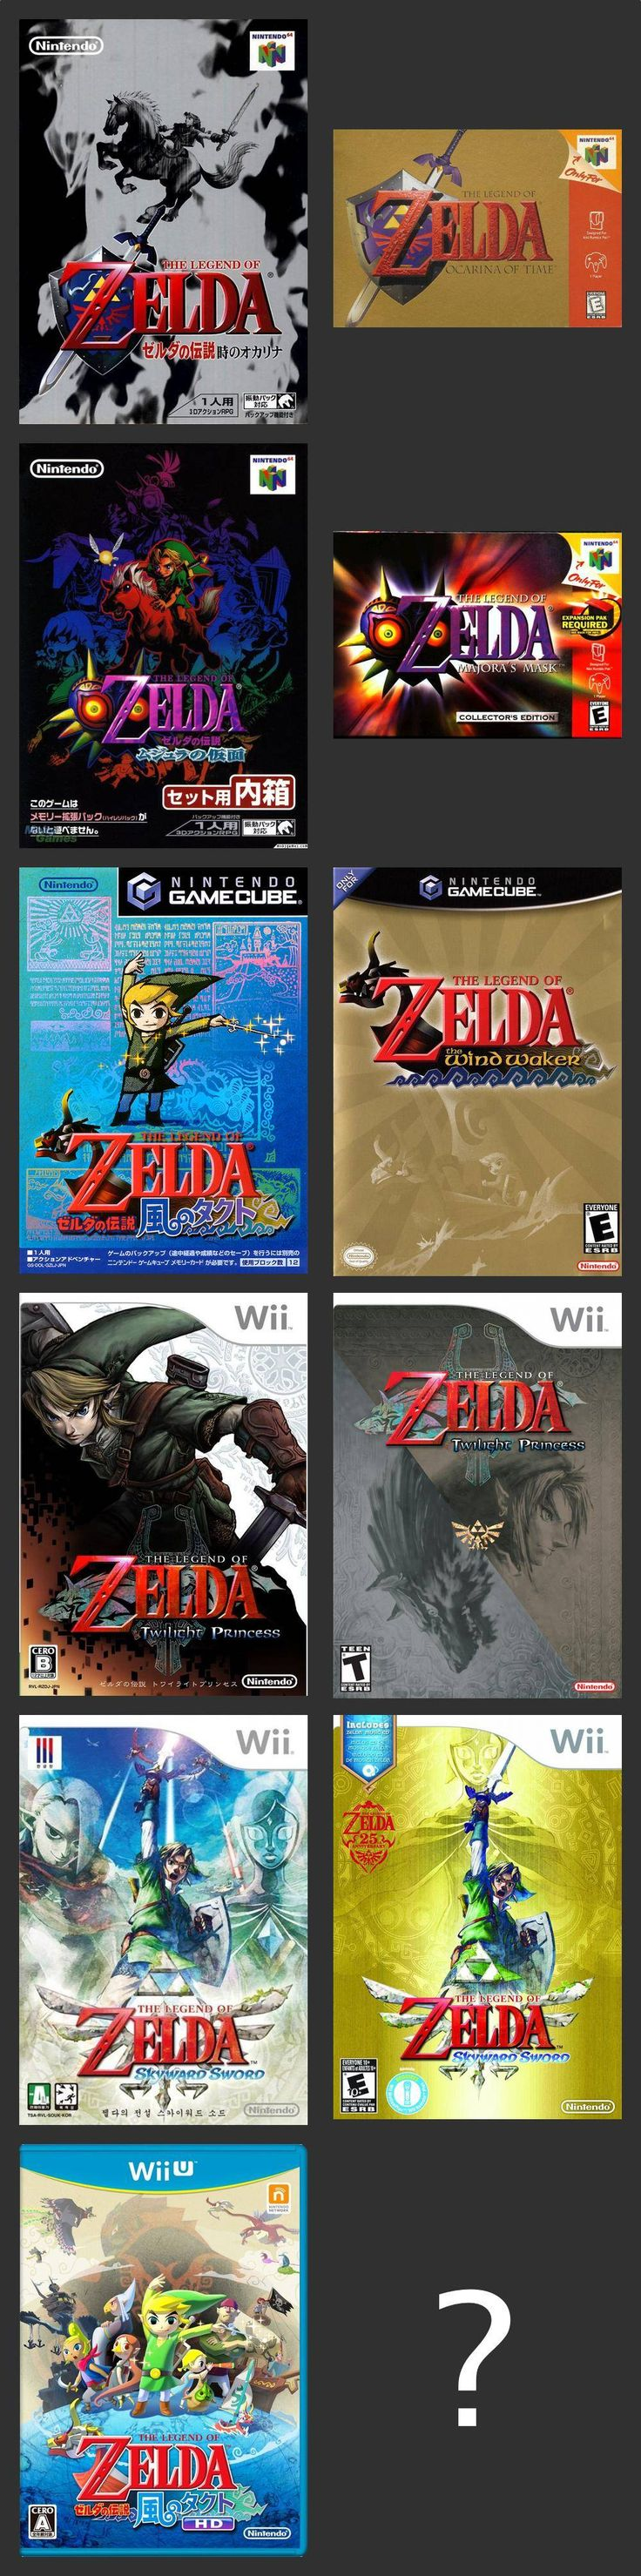 A comparison of the Japanese and US box art for all the 3D Zelda games #TheLegendOfZelda #Nintendo